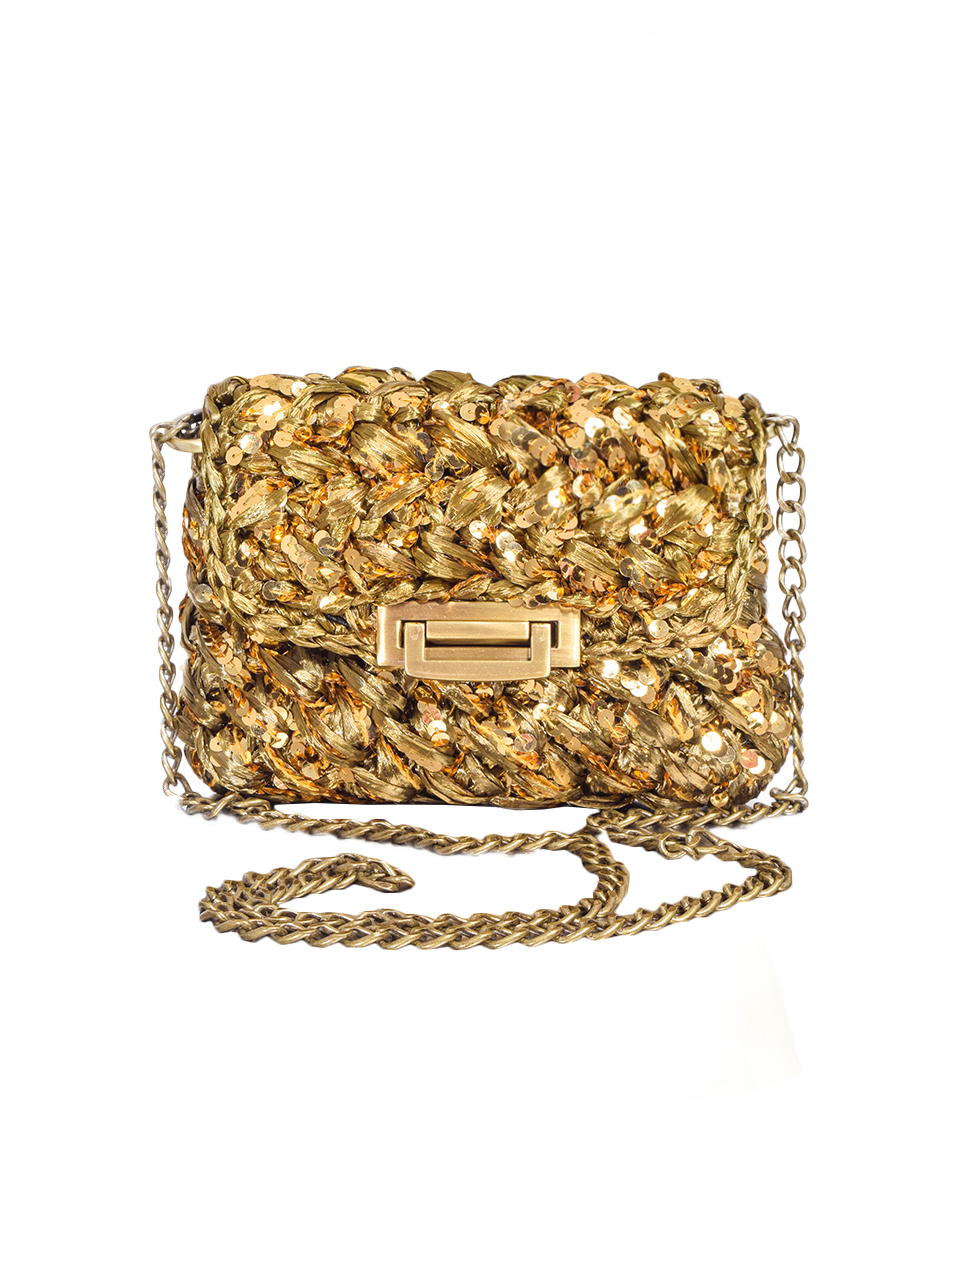 Lorenza Gandaglia Olive Raffia Bag with Chartreuse Sequins Front View with Chaiin